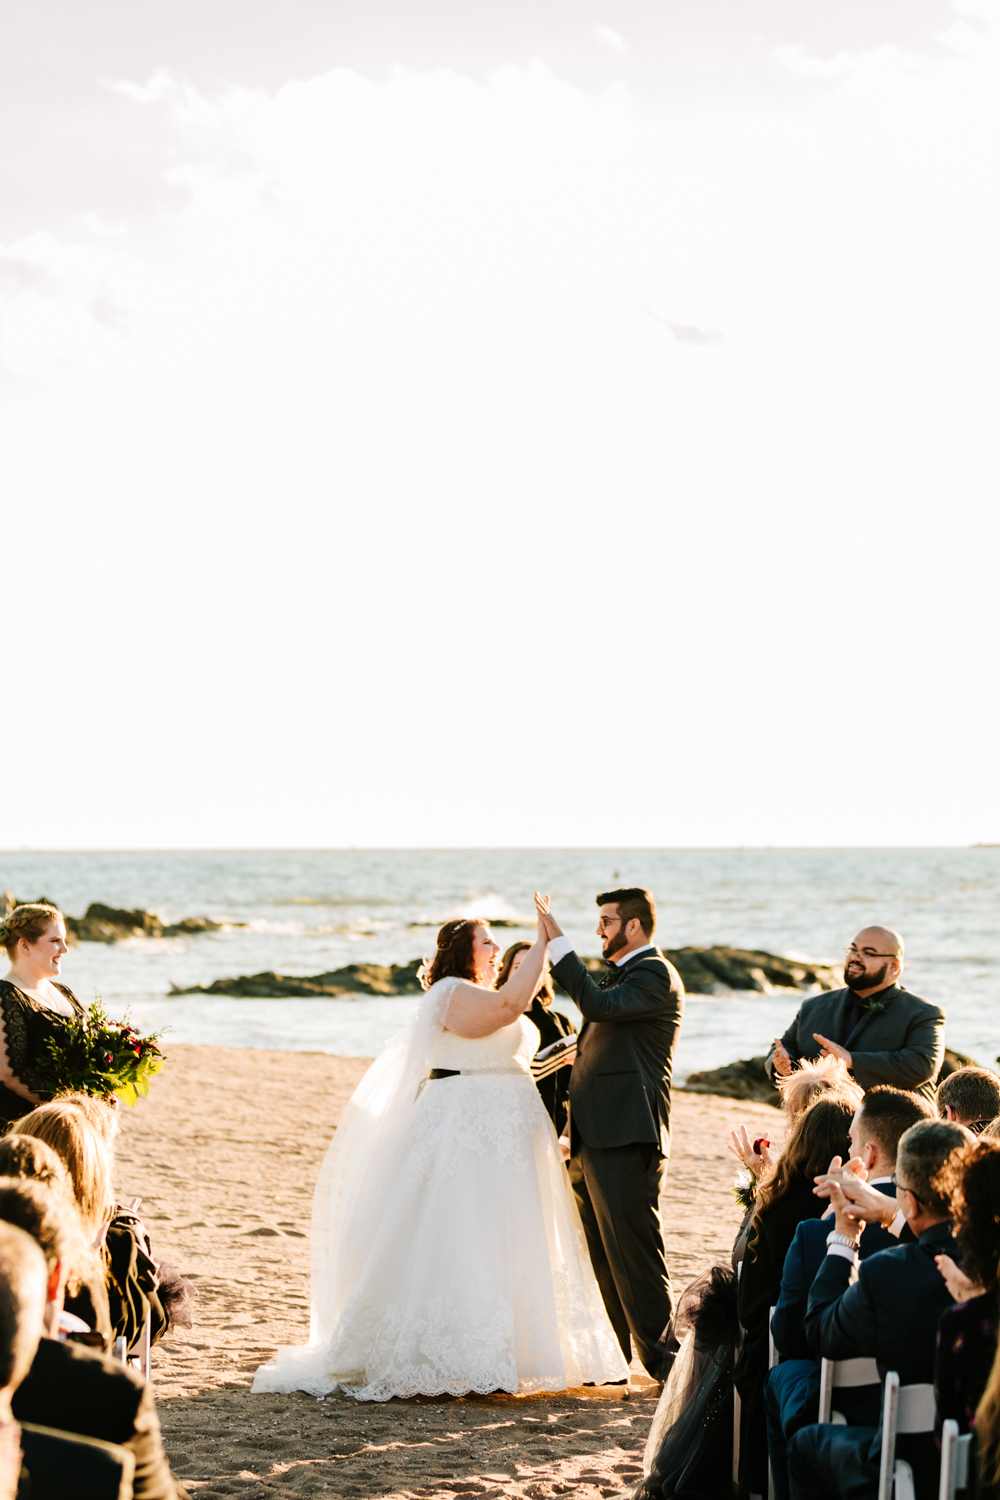 Bride and groom high five on beach ceremony